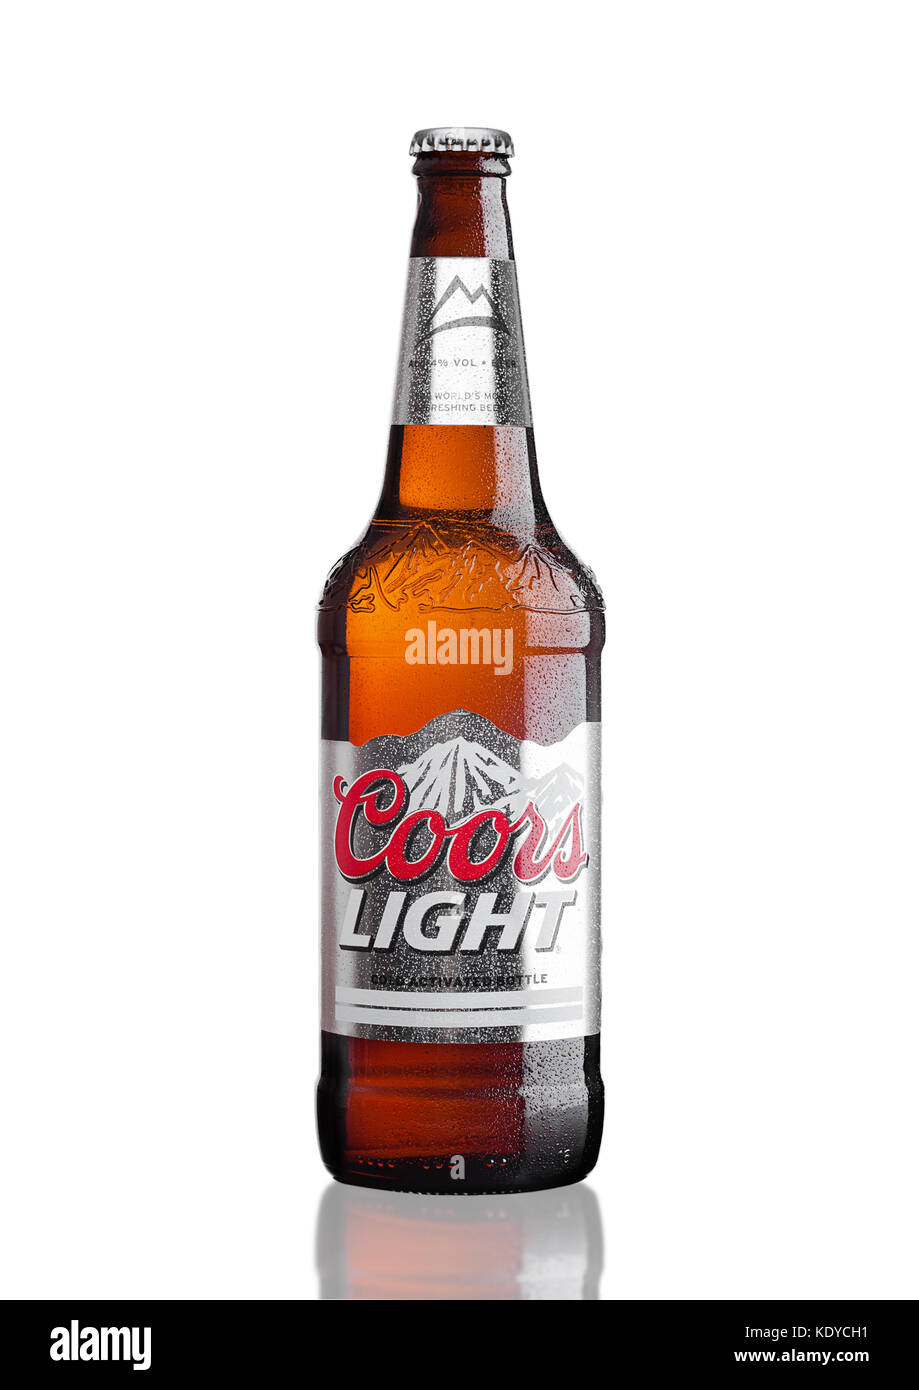 Coors Light Expiration Date On Bottle Decoratingspecial Com